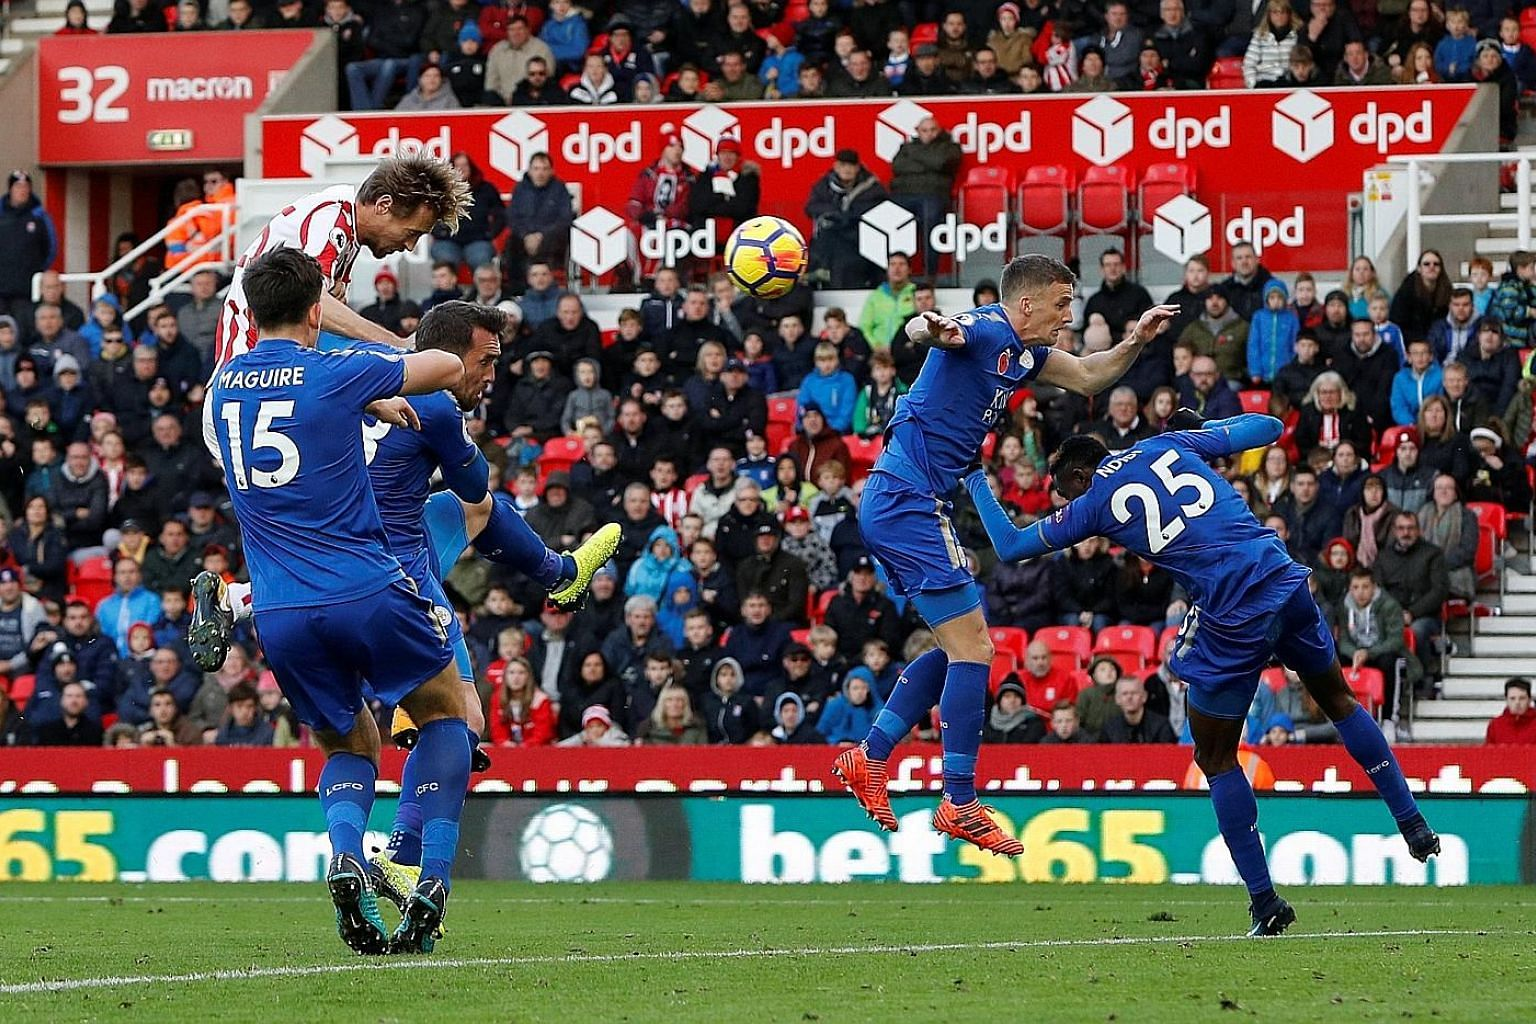 Substitute Peter Crouch powering home his bullet header to help hosts Stoke City earn a point in a 2-2 Premier League draw with Leicester.